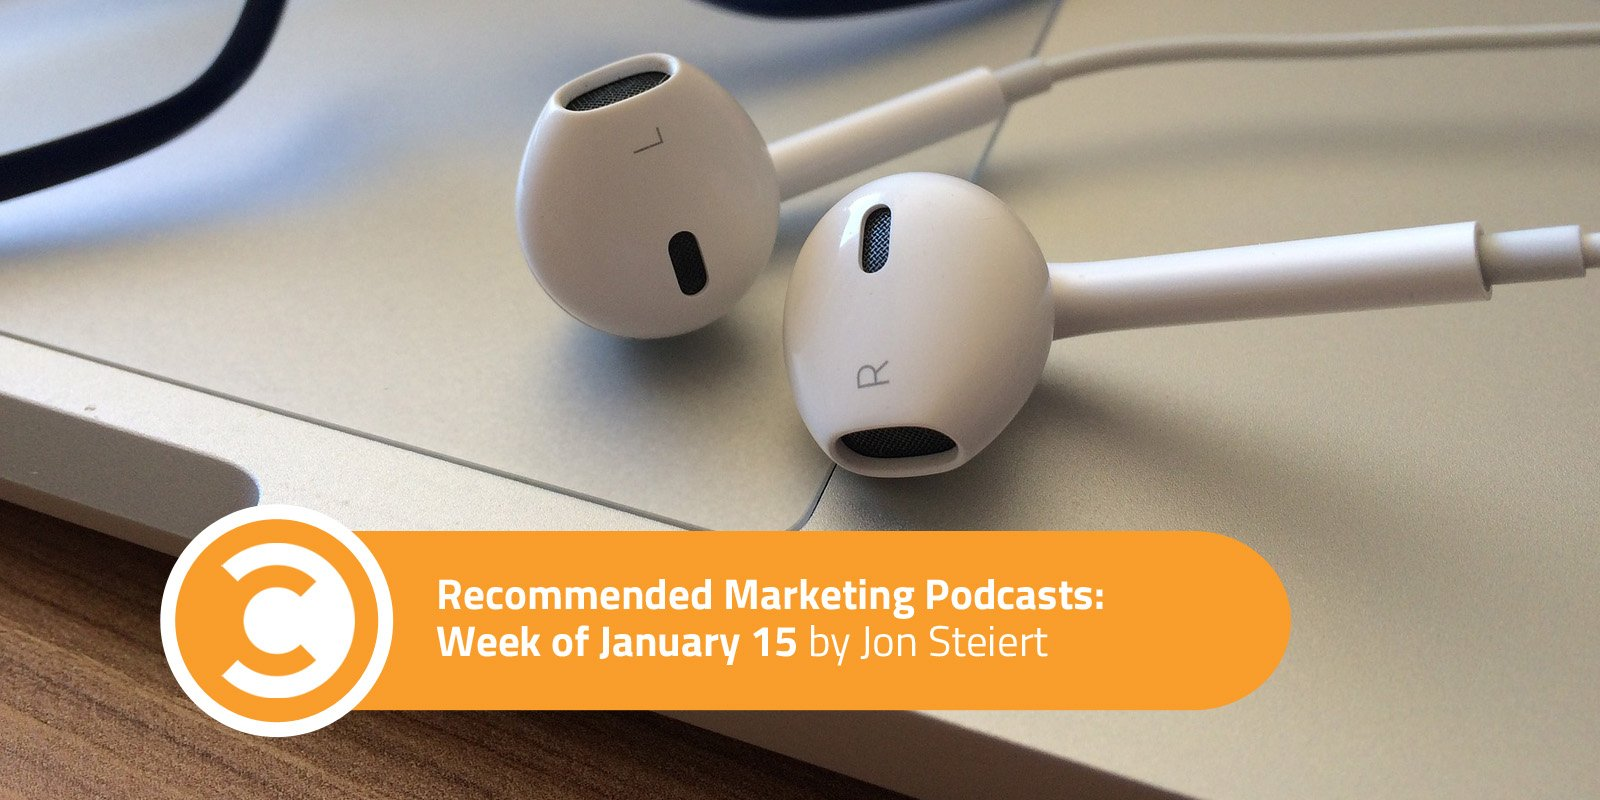 Recommended Marketing Podcasts Week of January 15